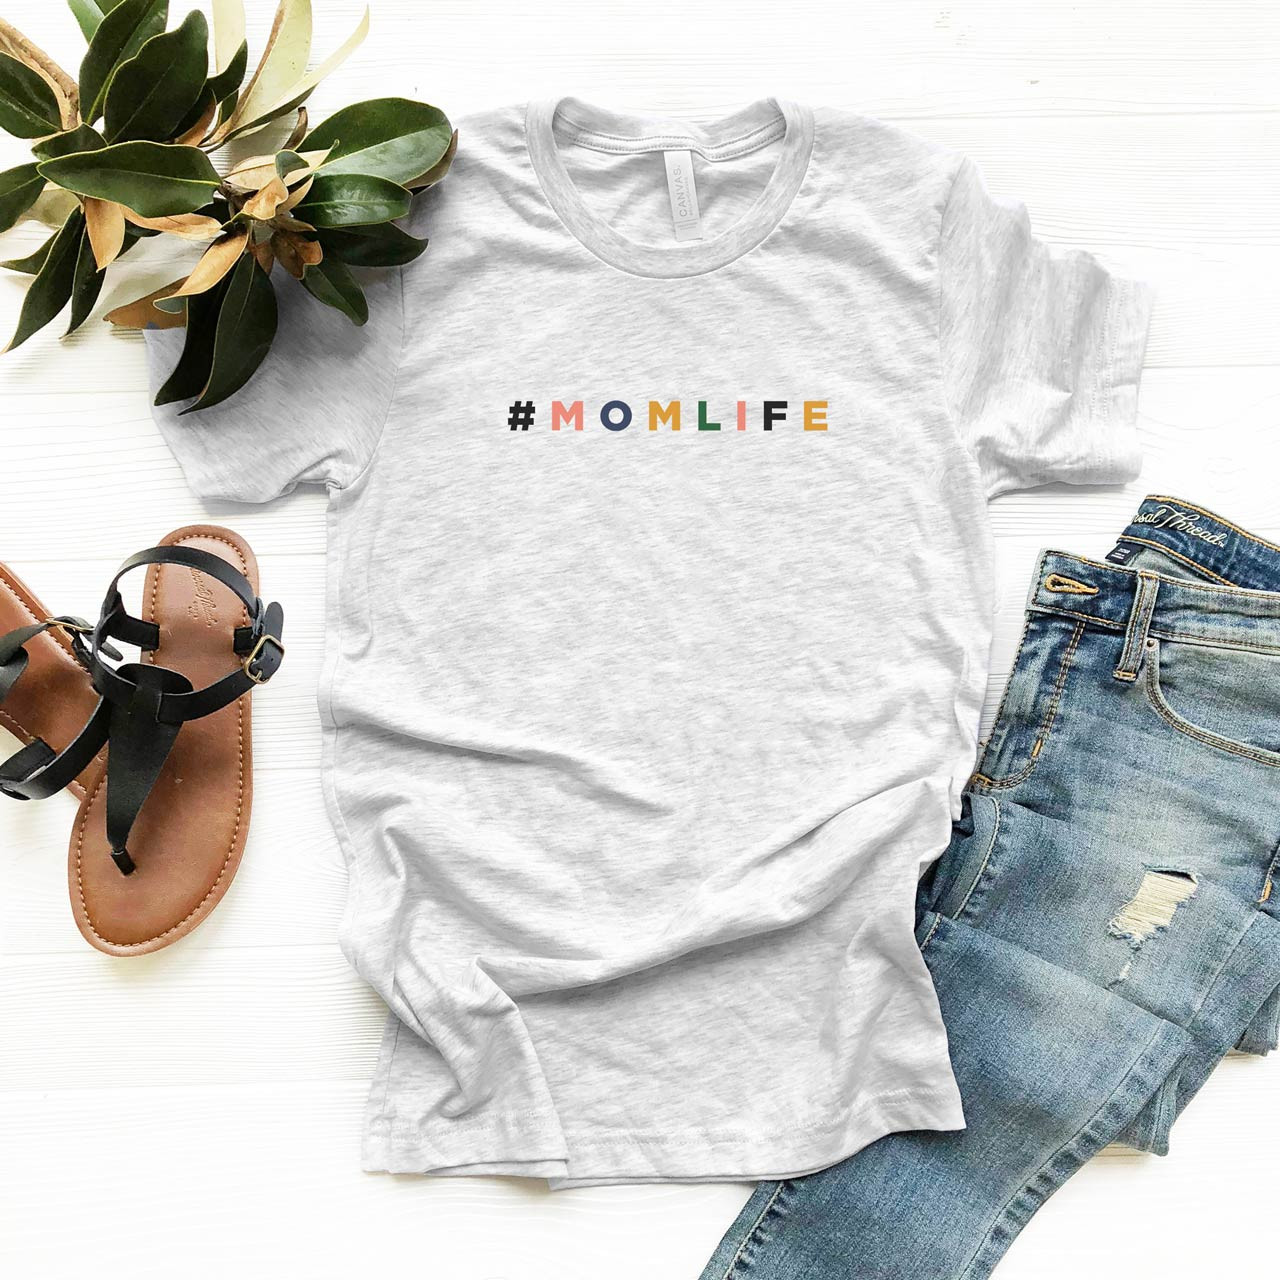 #MOMLIFE Vintage T-Shirt (Color on Light Gray Fleck) from The Printed Home